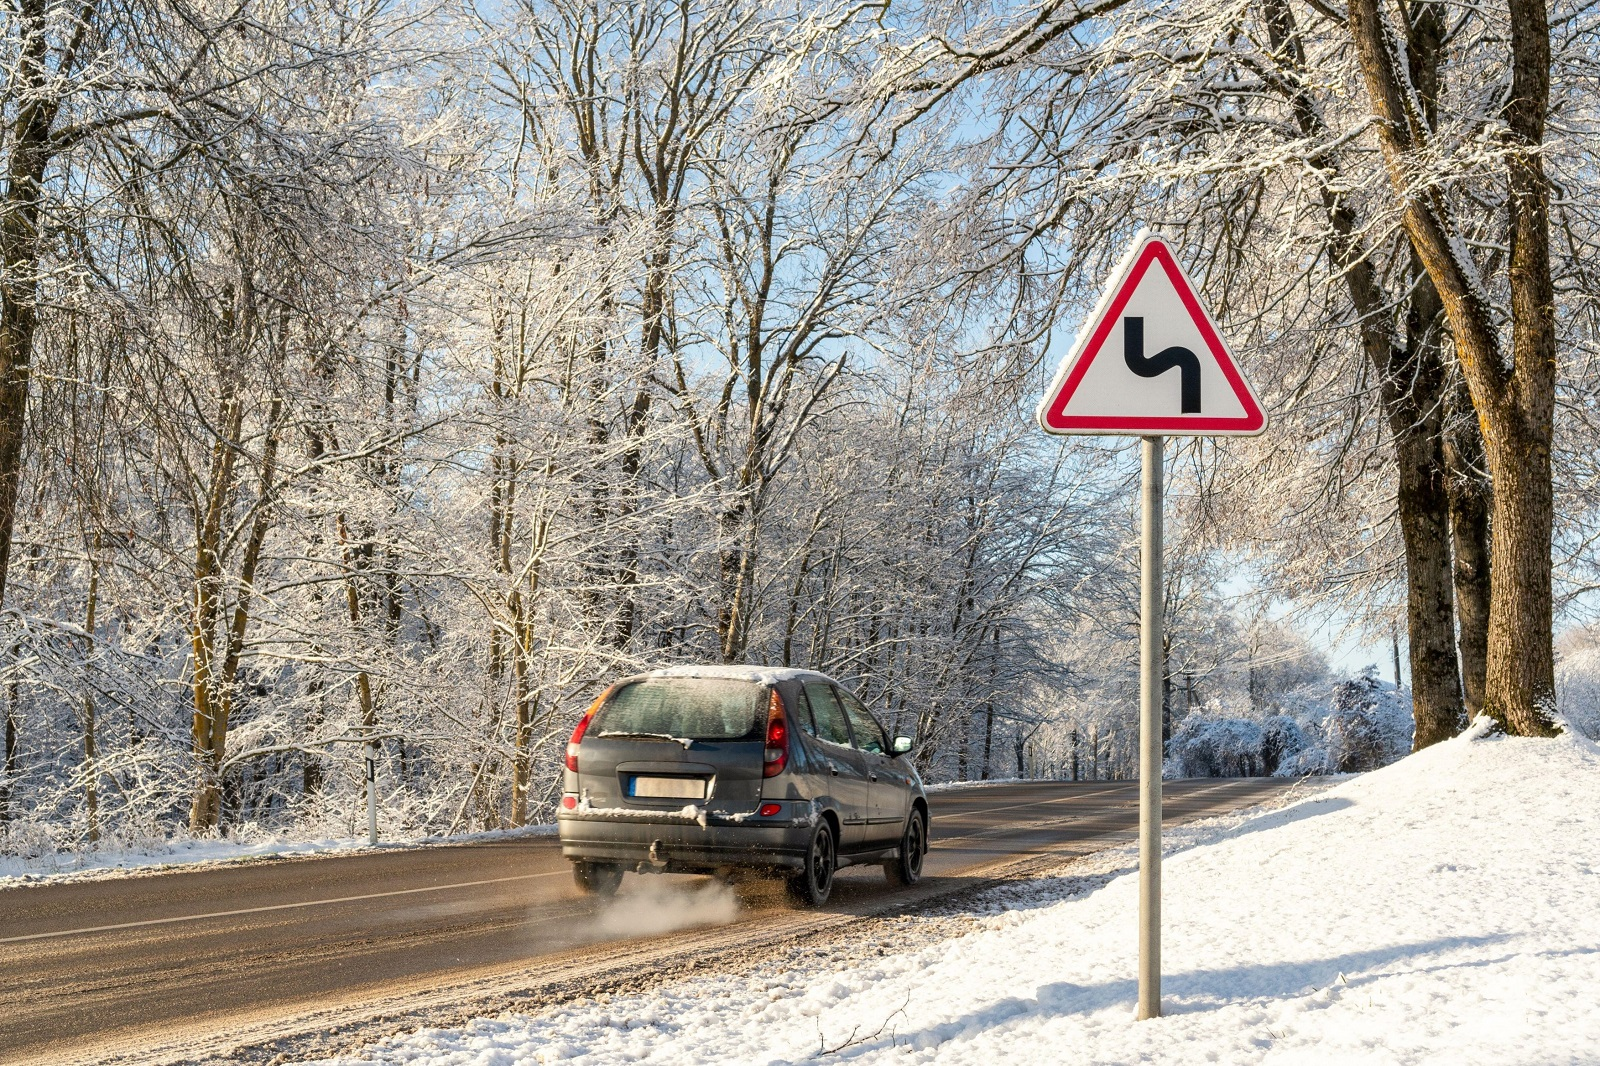 Winter Driving - Curvy Winter Road with Warning Sign. Snow-covered road in winter, car on a dangerous stretch of road covered with snow and ice. Selective focus on road sign., Image: 486276395, License: Royalty-free, Restrictions: , Model Release: no, Credit line: graja / Alamy / Alamy / Profimedia